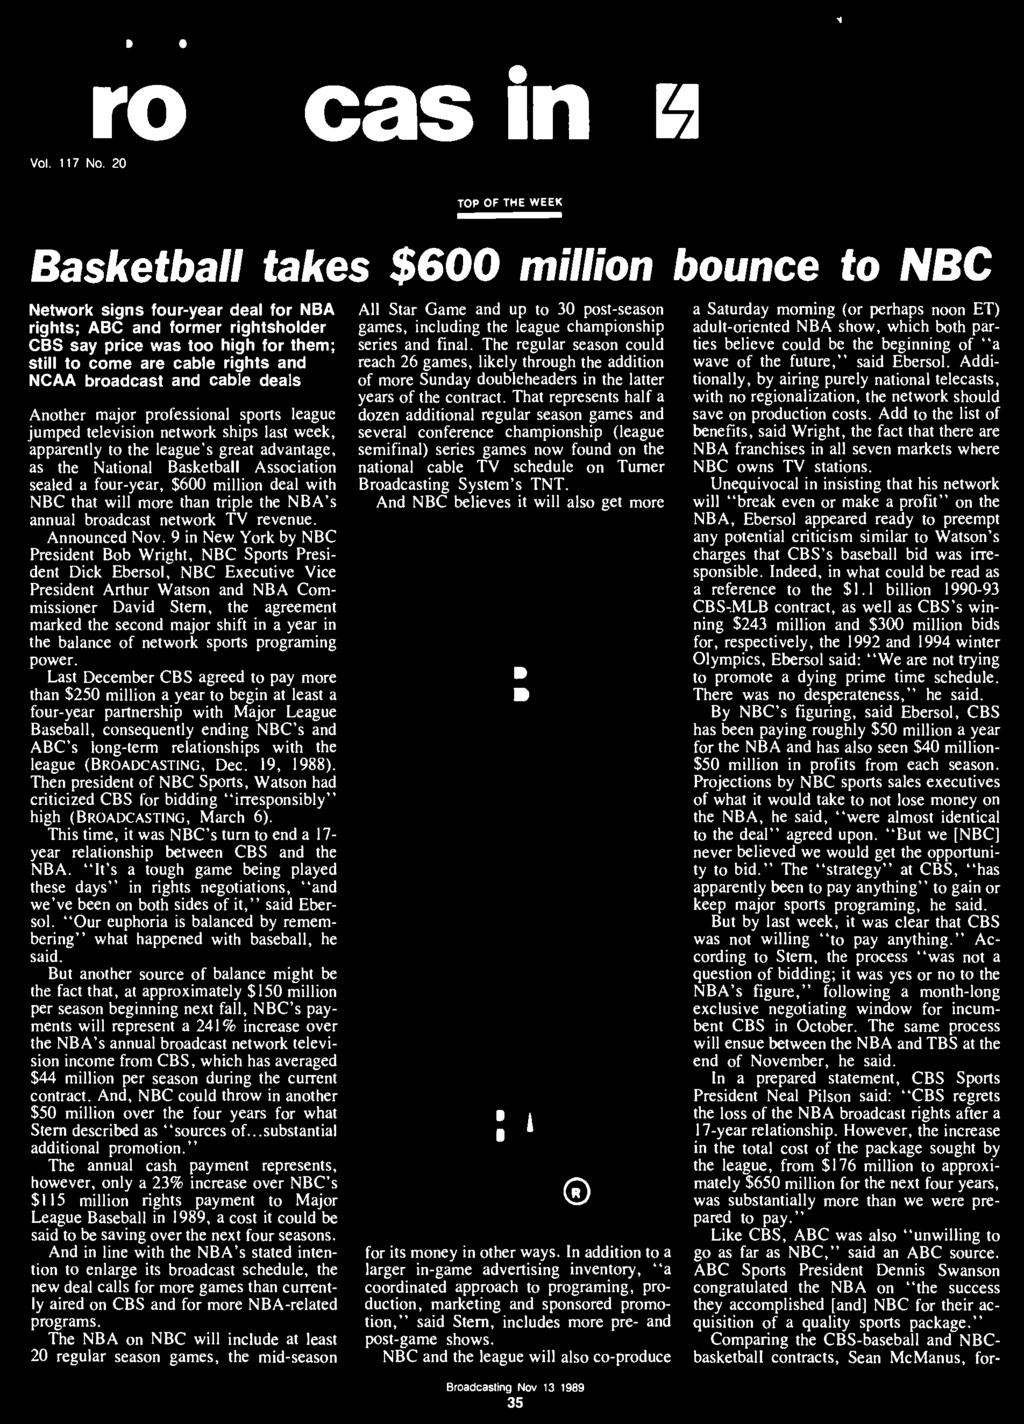 9 in New York by NBC President Bob Wright, NBC Sports President Dick Ebersol, NBC Executive Vice President Arthur Watson and NBA Commissioner David Stern, the agreement marked the second major shift